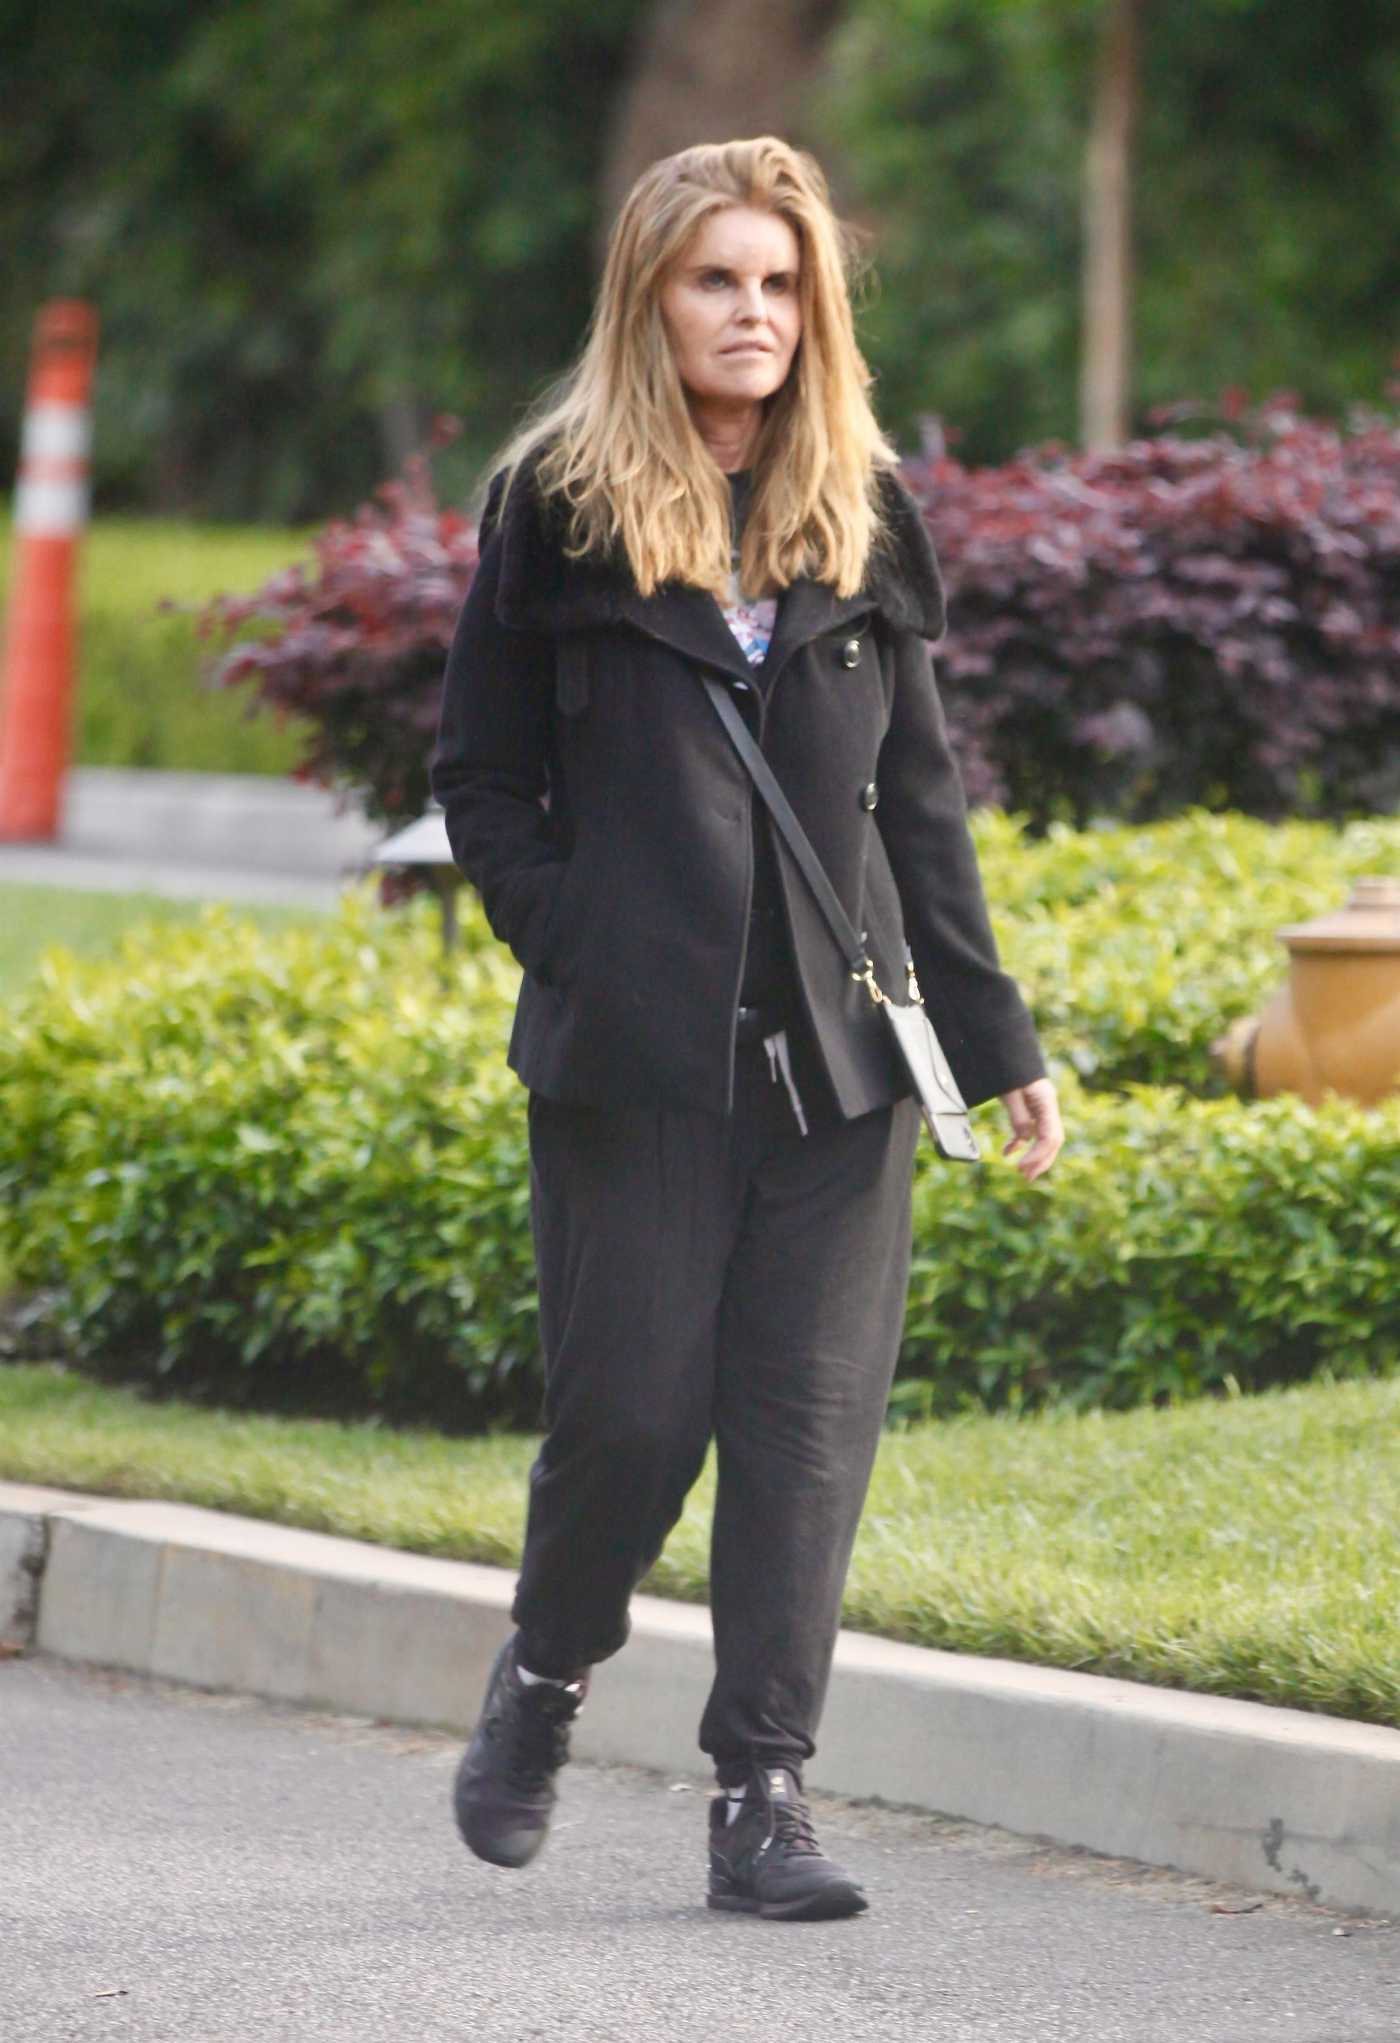 Maria Shriver in a Black Sneakers Was Seen Out in Brentwood 04/29/2020